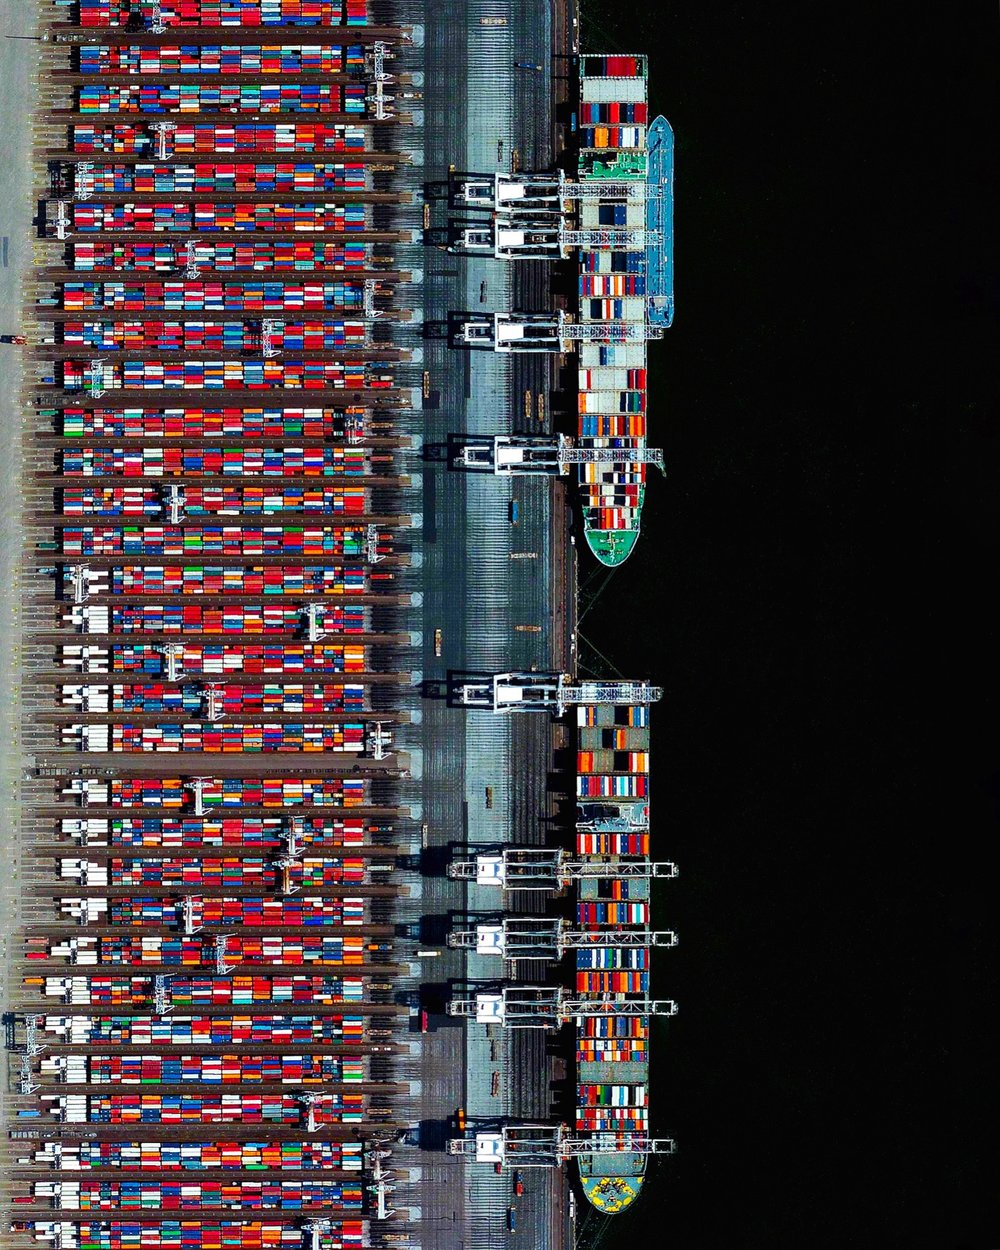 Shipping containers are seen at the Port of Rotterdam in the Netherlands. From 1962 until 2002, the facility was the world's busiest port, but was overtaken first Singapore and later Shanghai. In 2015, Rotterdam ranked as the world's sixth-largest port in terms of annual cargo tonnage.  51.952790 °, 4.053669°  Source imagery: DigitalGlobe